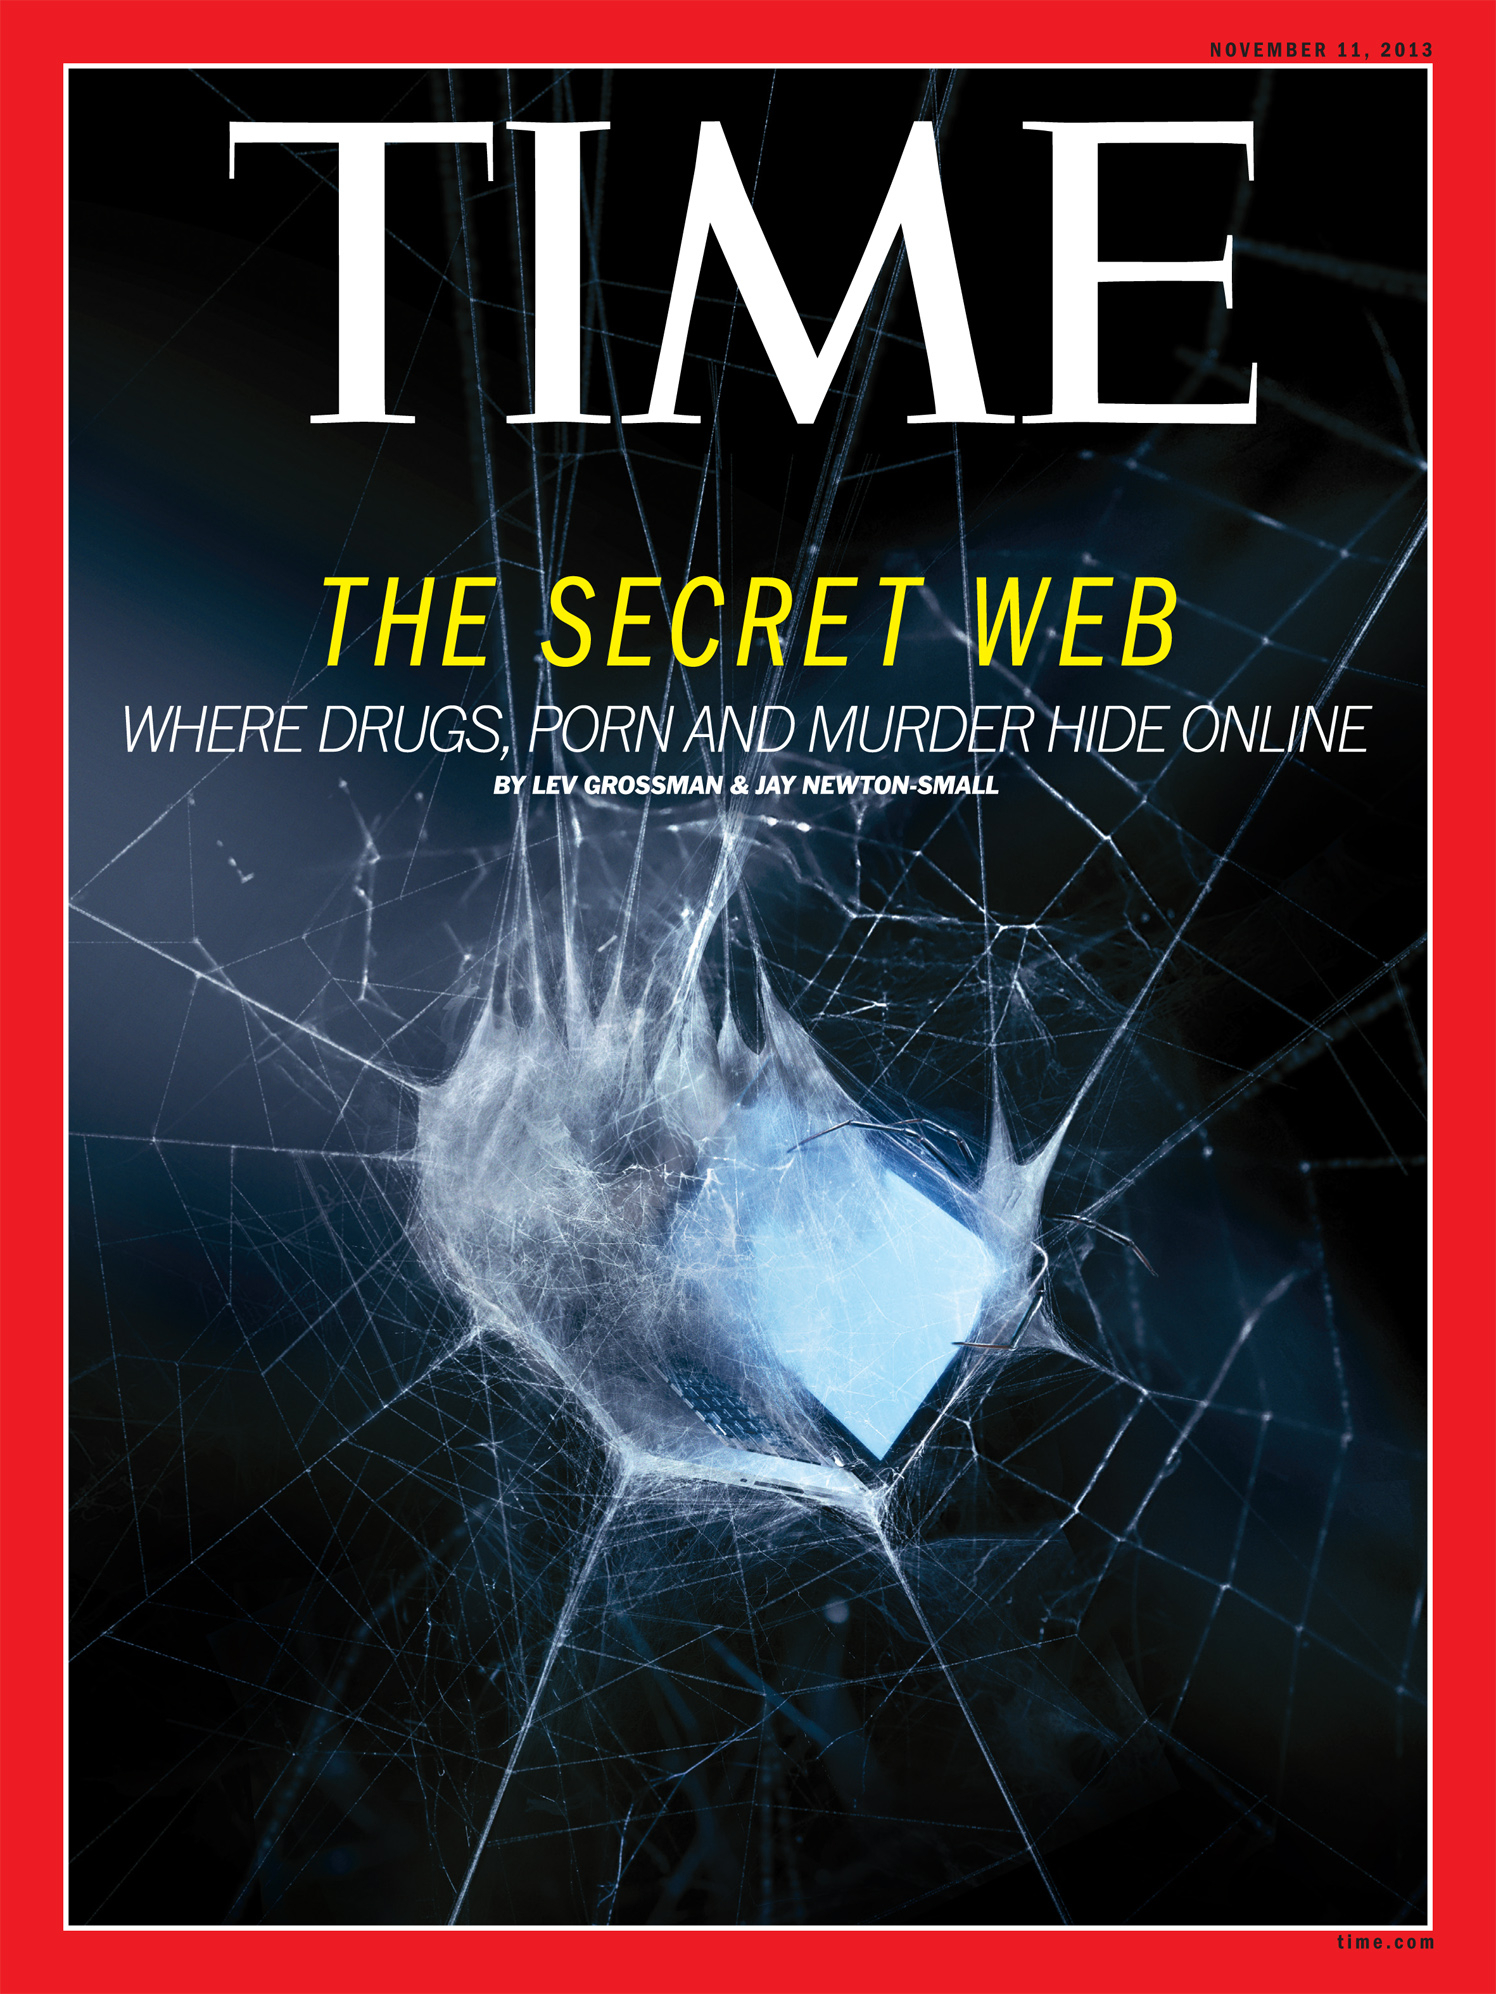 The Secret Web / Time Magazine